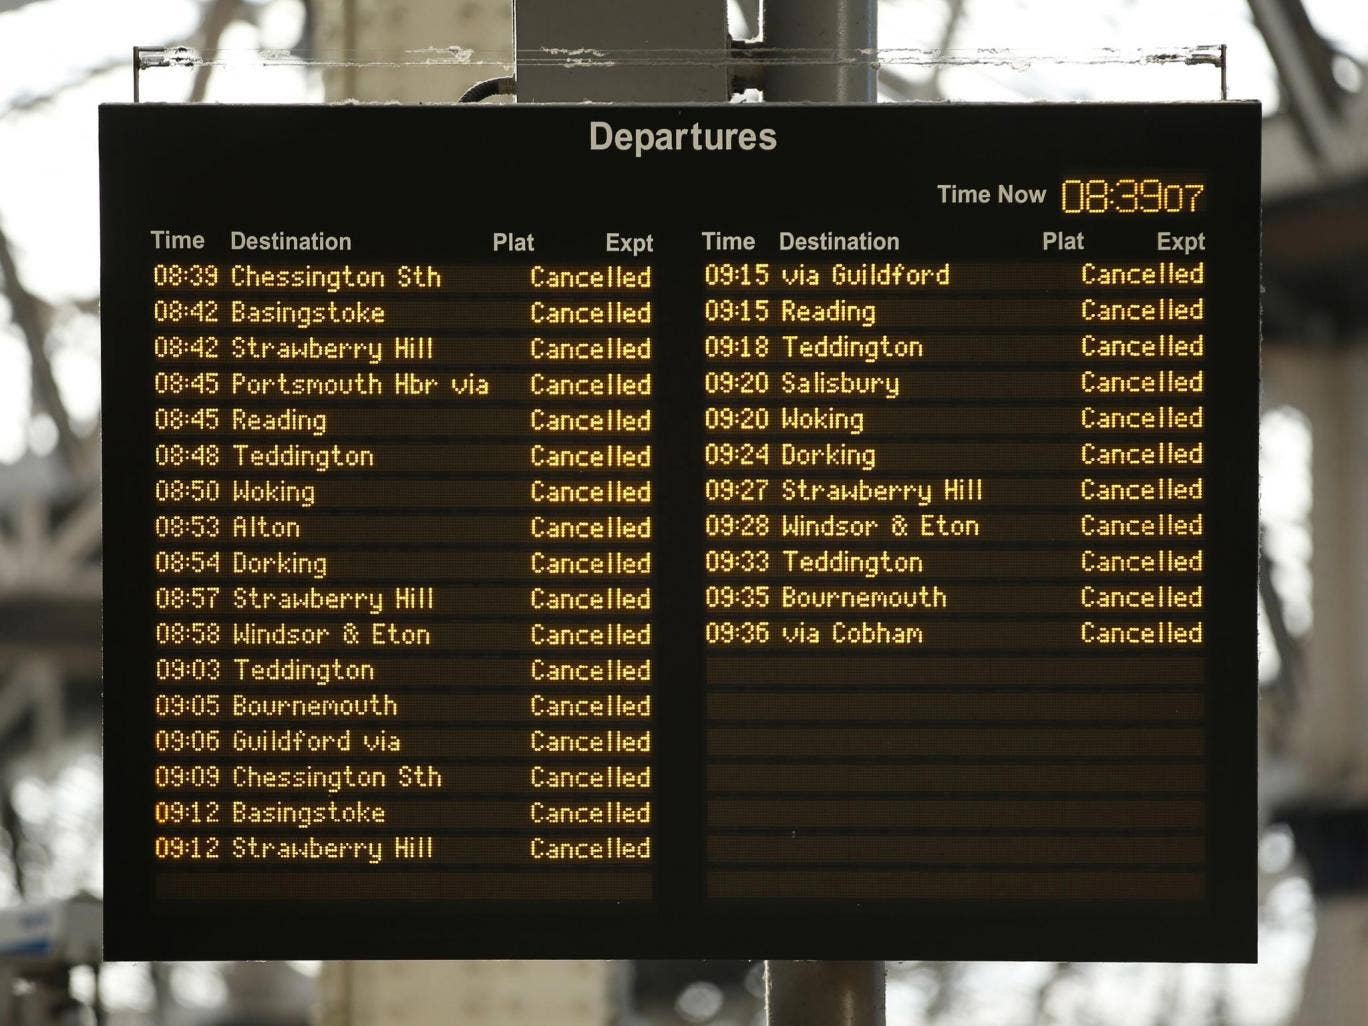 The House of Commons Transport Committee amended its hearing on transport's winter-resilience plans due to the storm